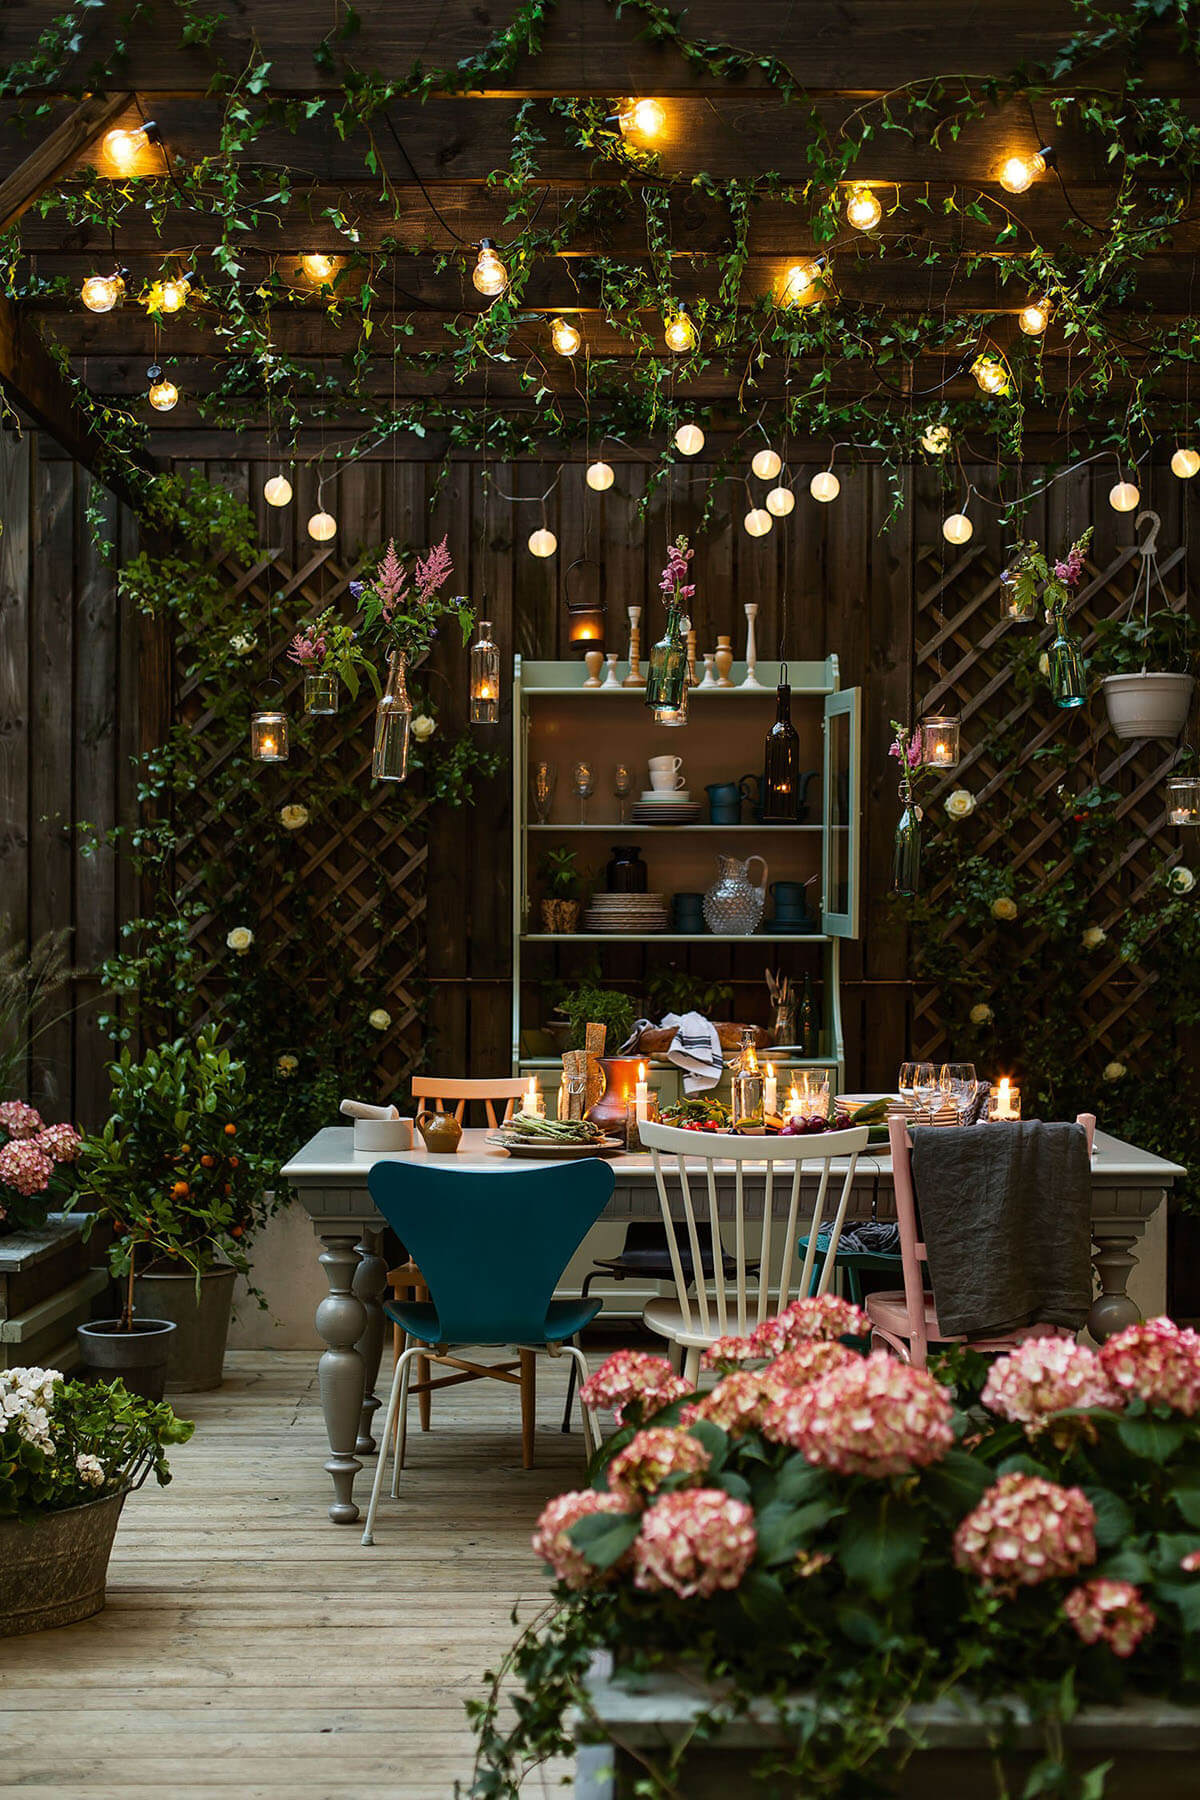 27 Best Backyard Lighting Ideas and Designs for 2019